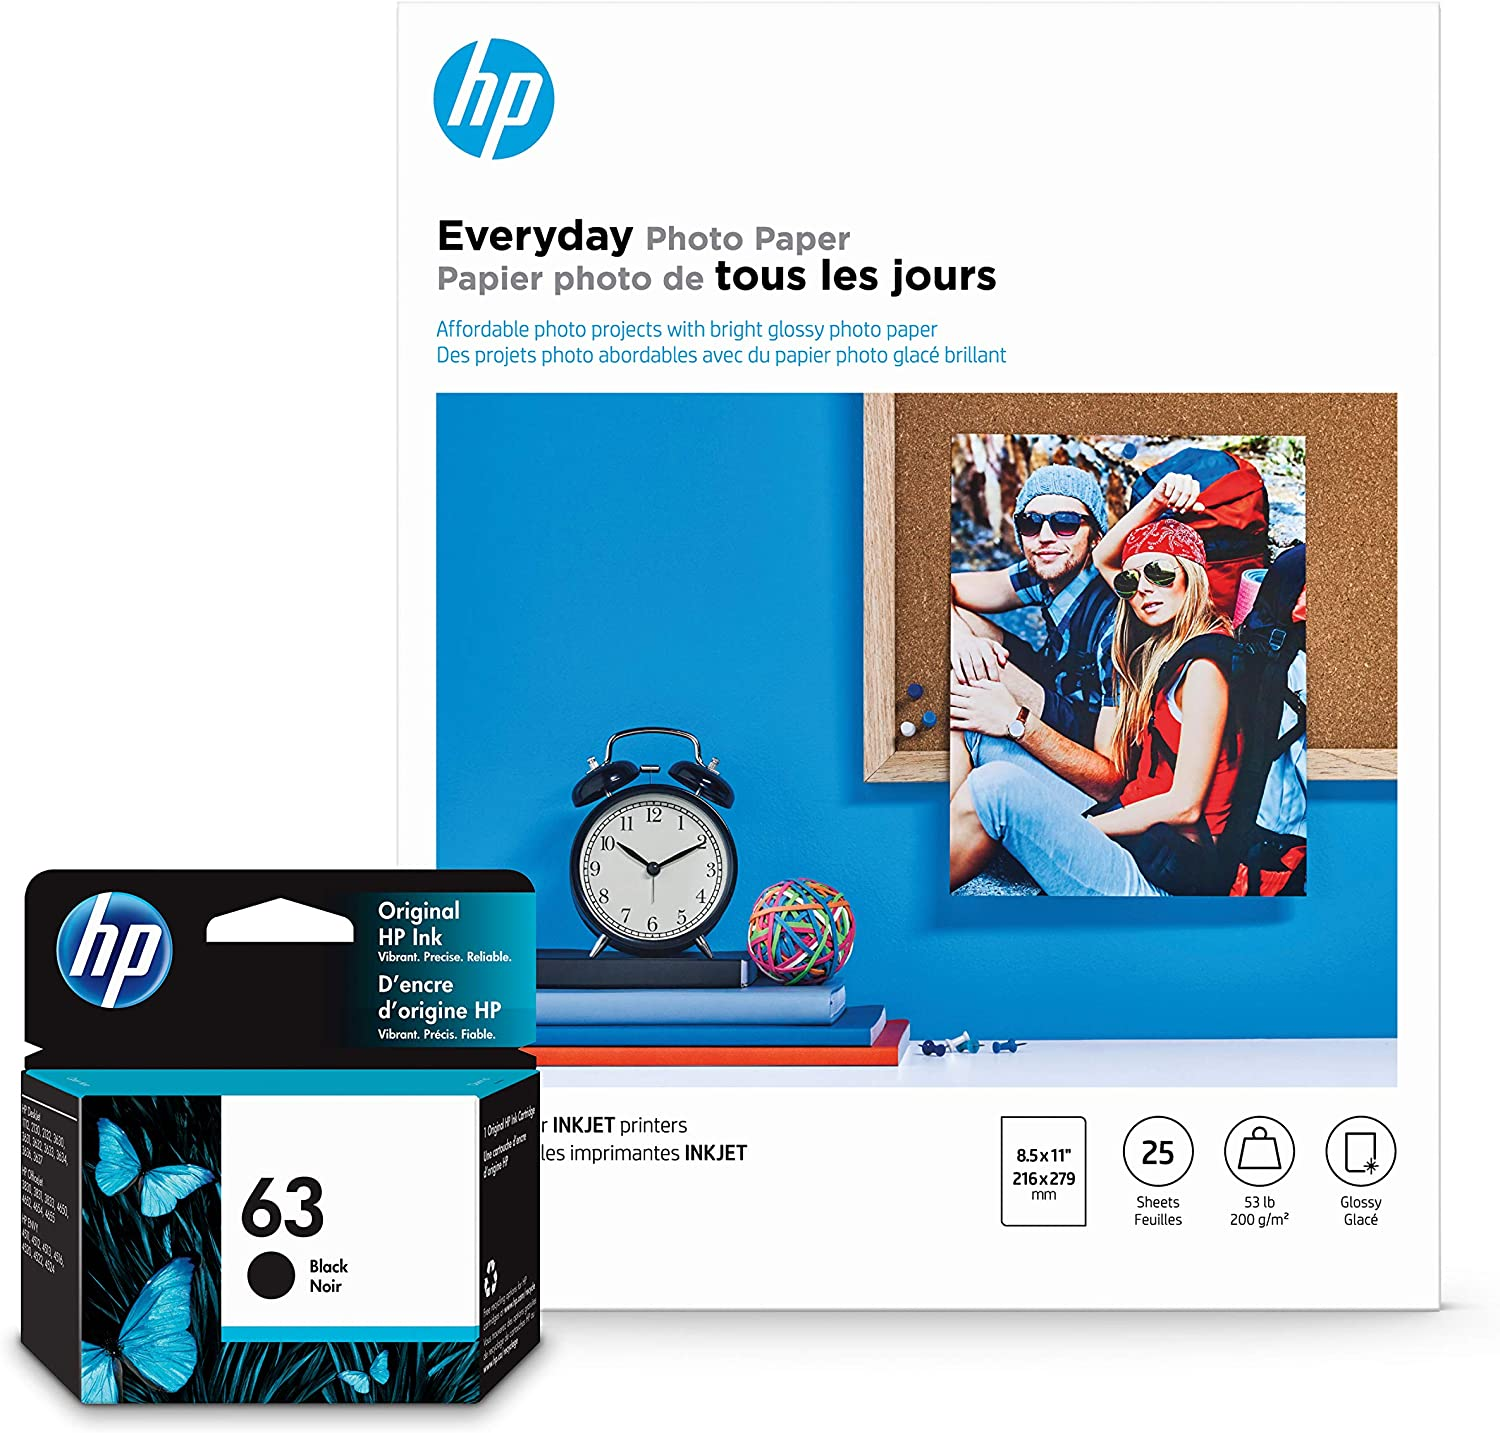 HP 63 Black Ink + HP Everyday Photo Paper, Glossy, 25 Sheets, 8.5x11